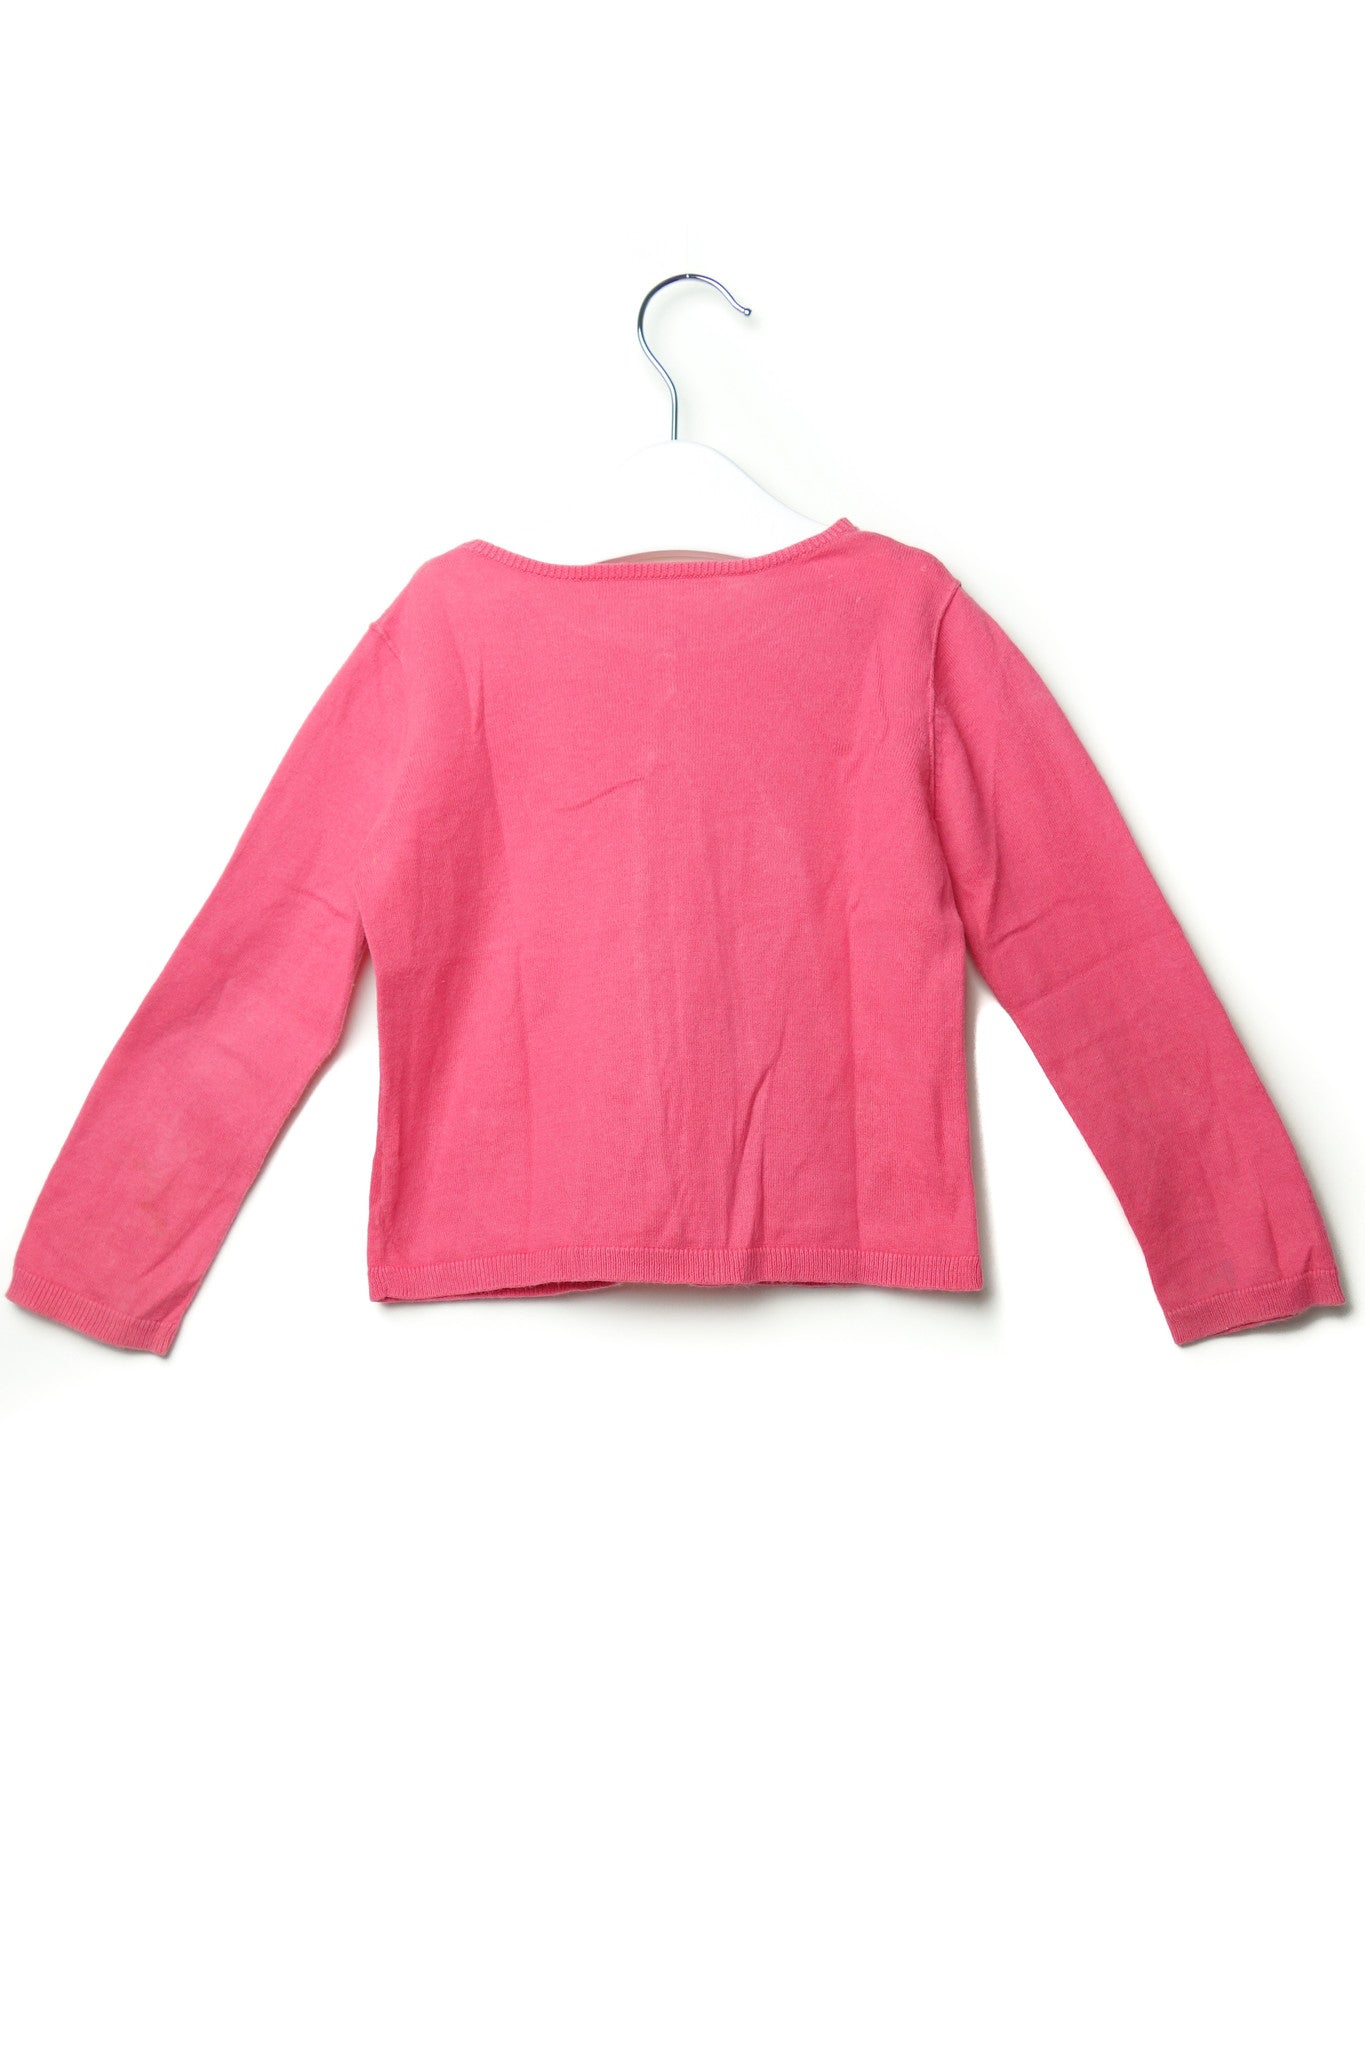 10001694 Bonpoint Kids~Cardigan 2T at Retykle